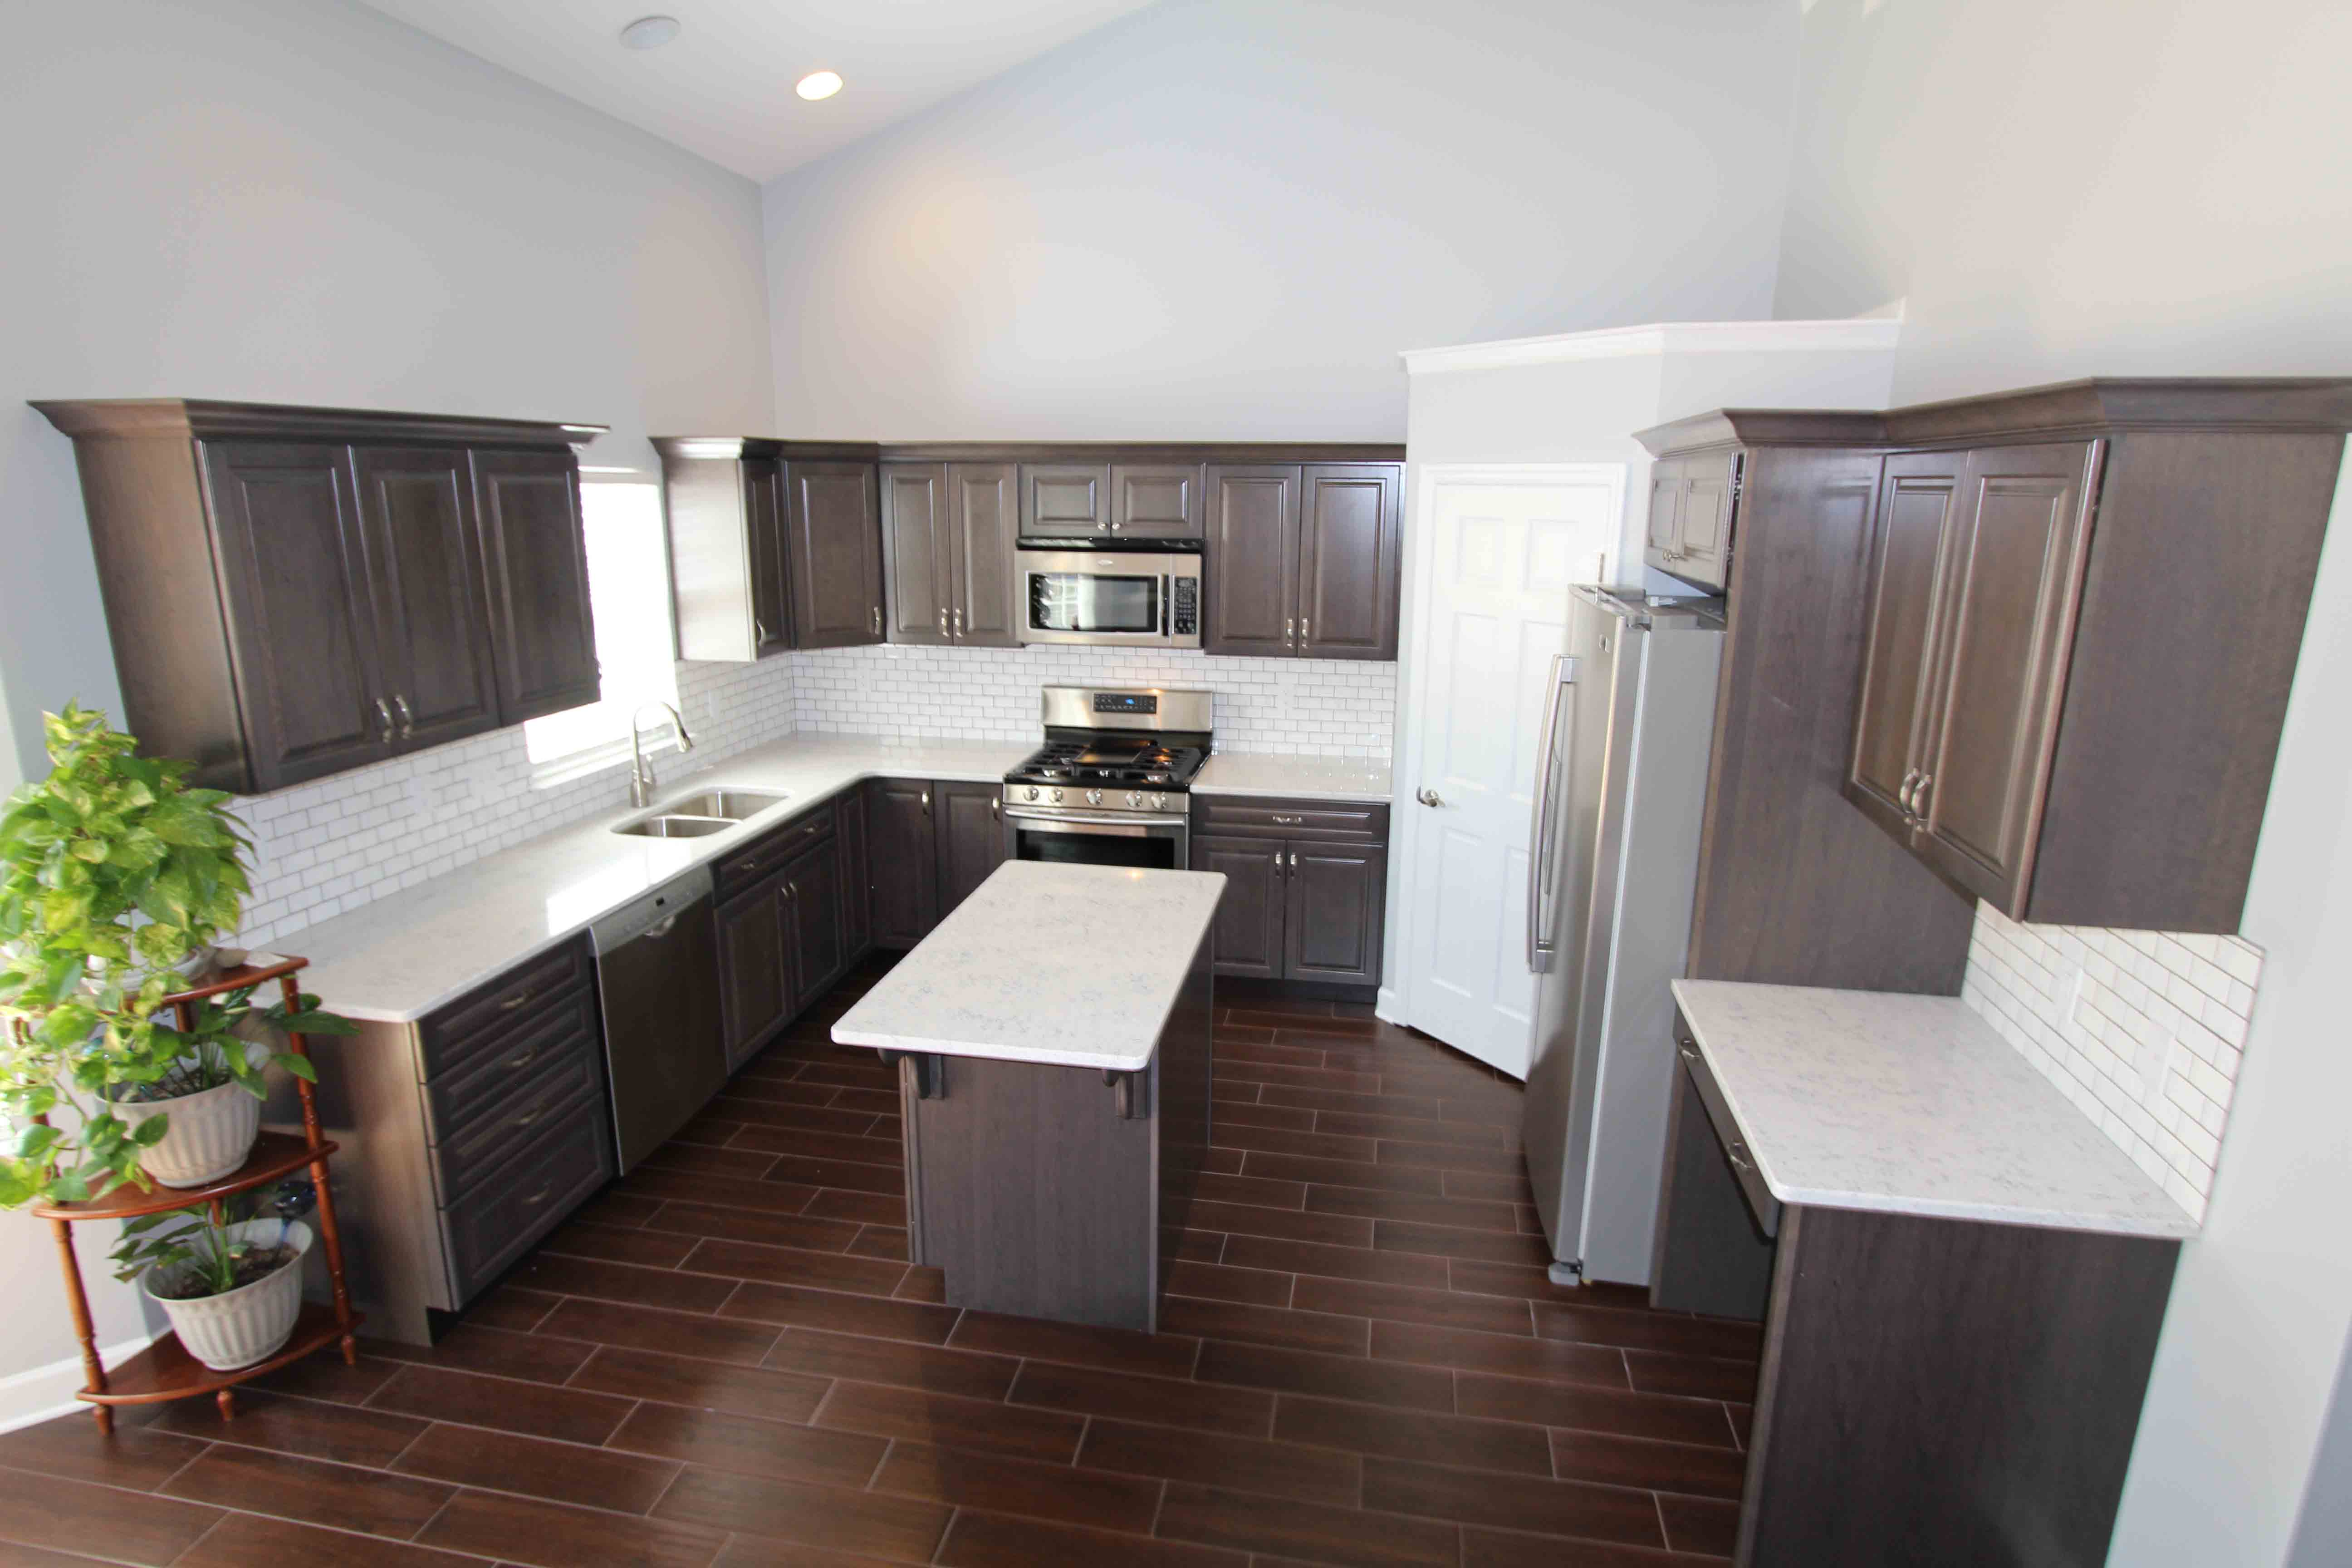 Fire Restoration And Complete Kitchen